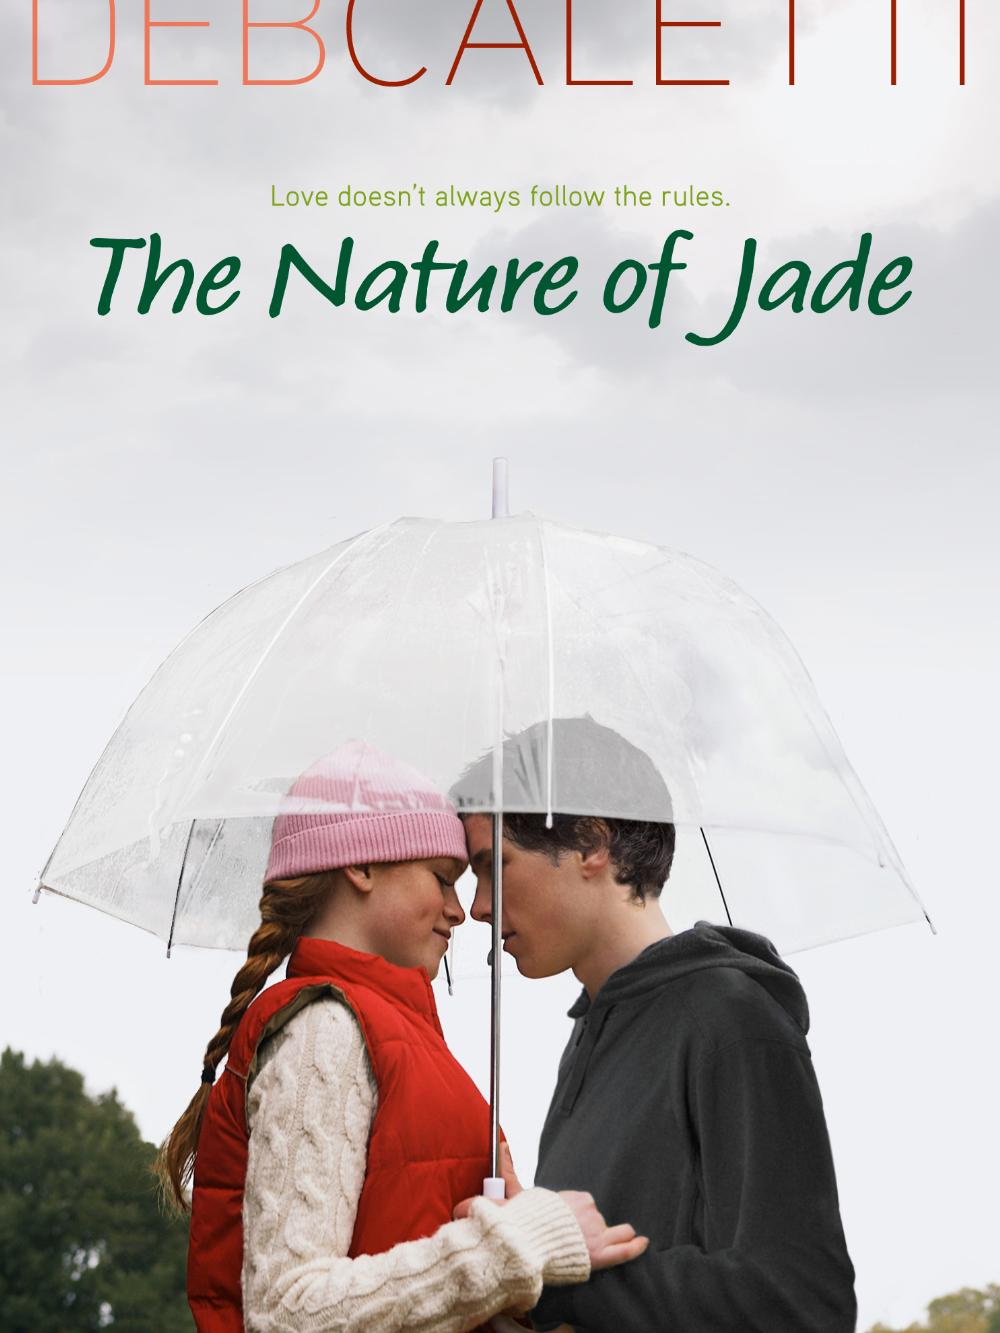 The Nature of Jade by Deb Caletti, from Teen Read Week